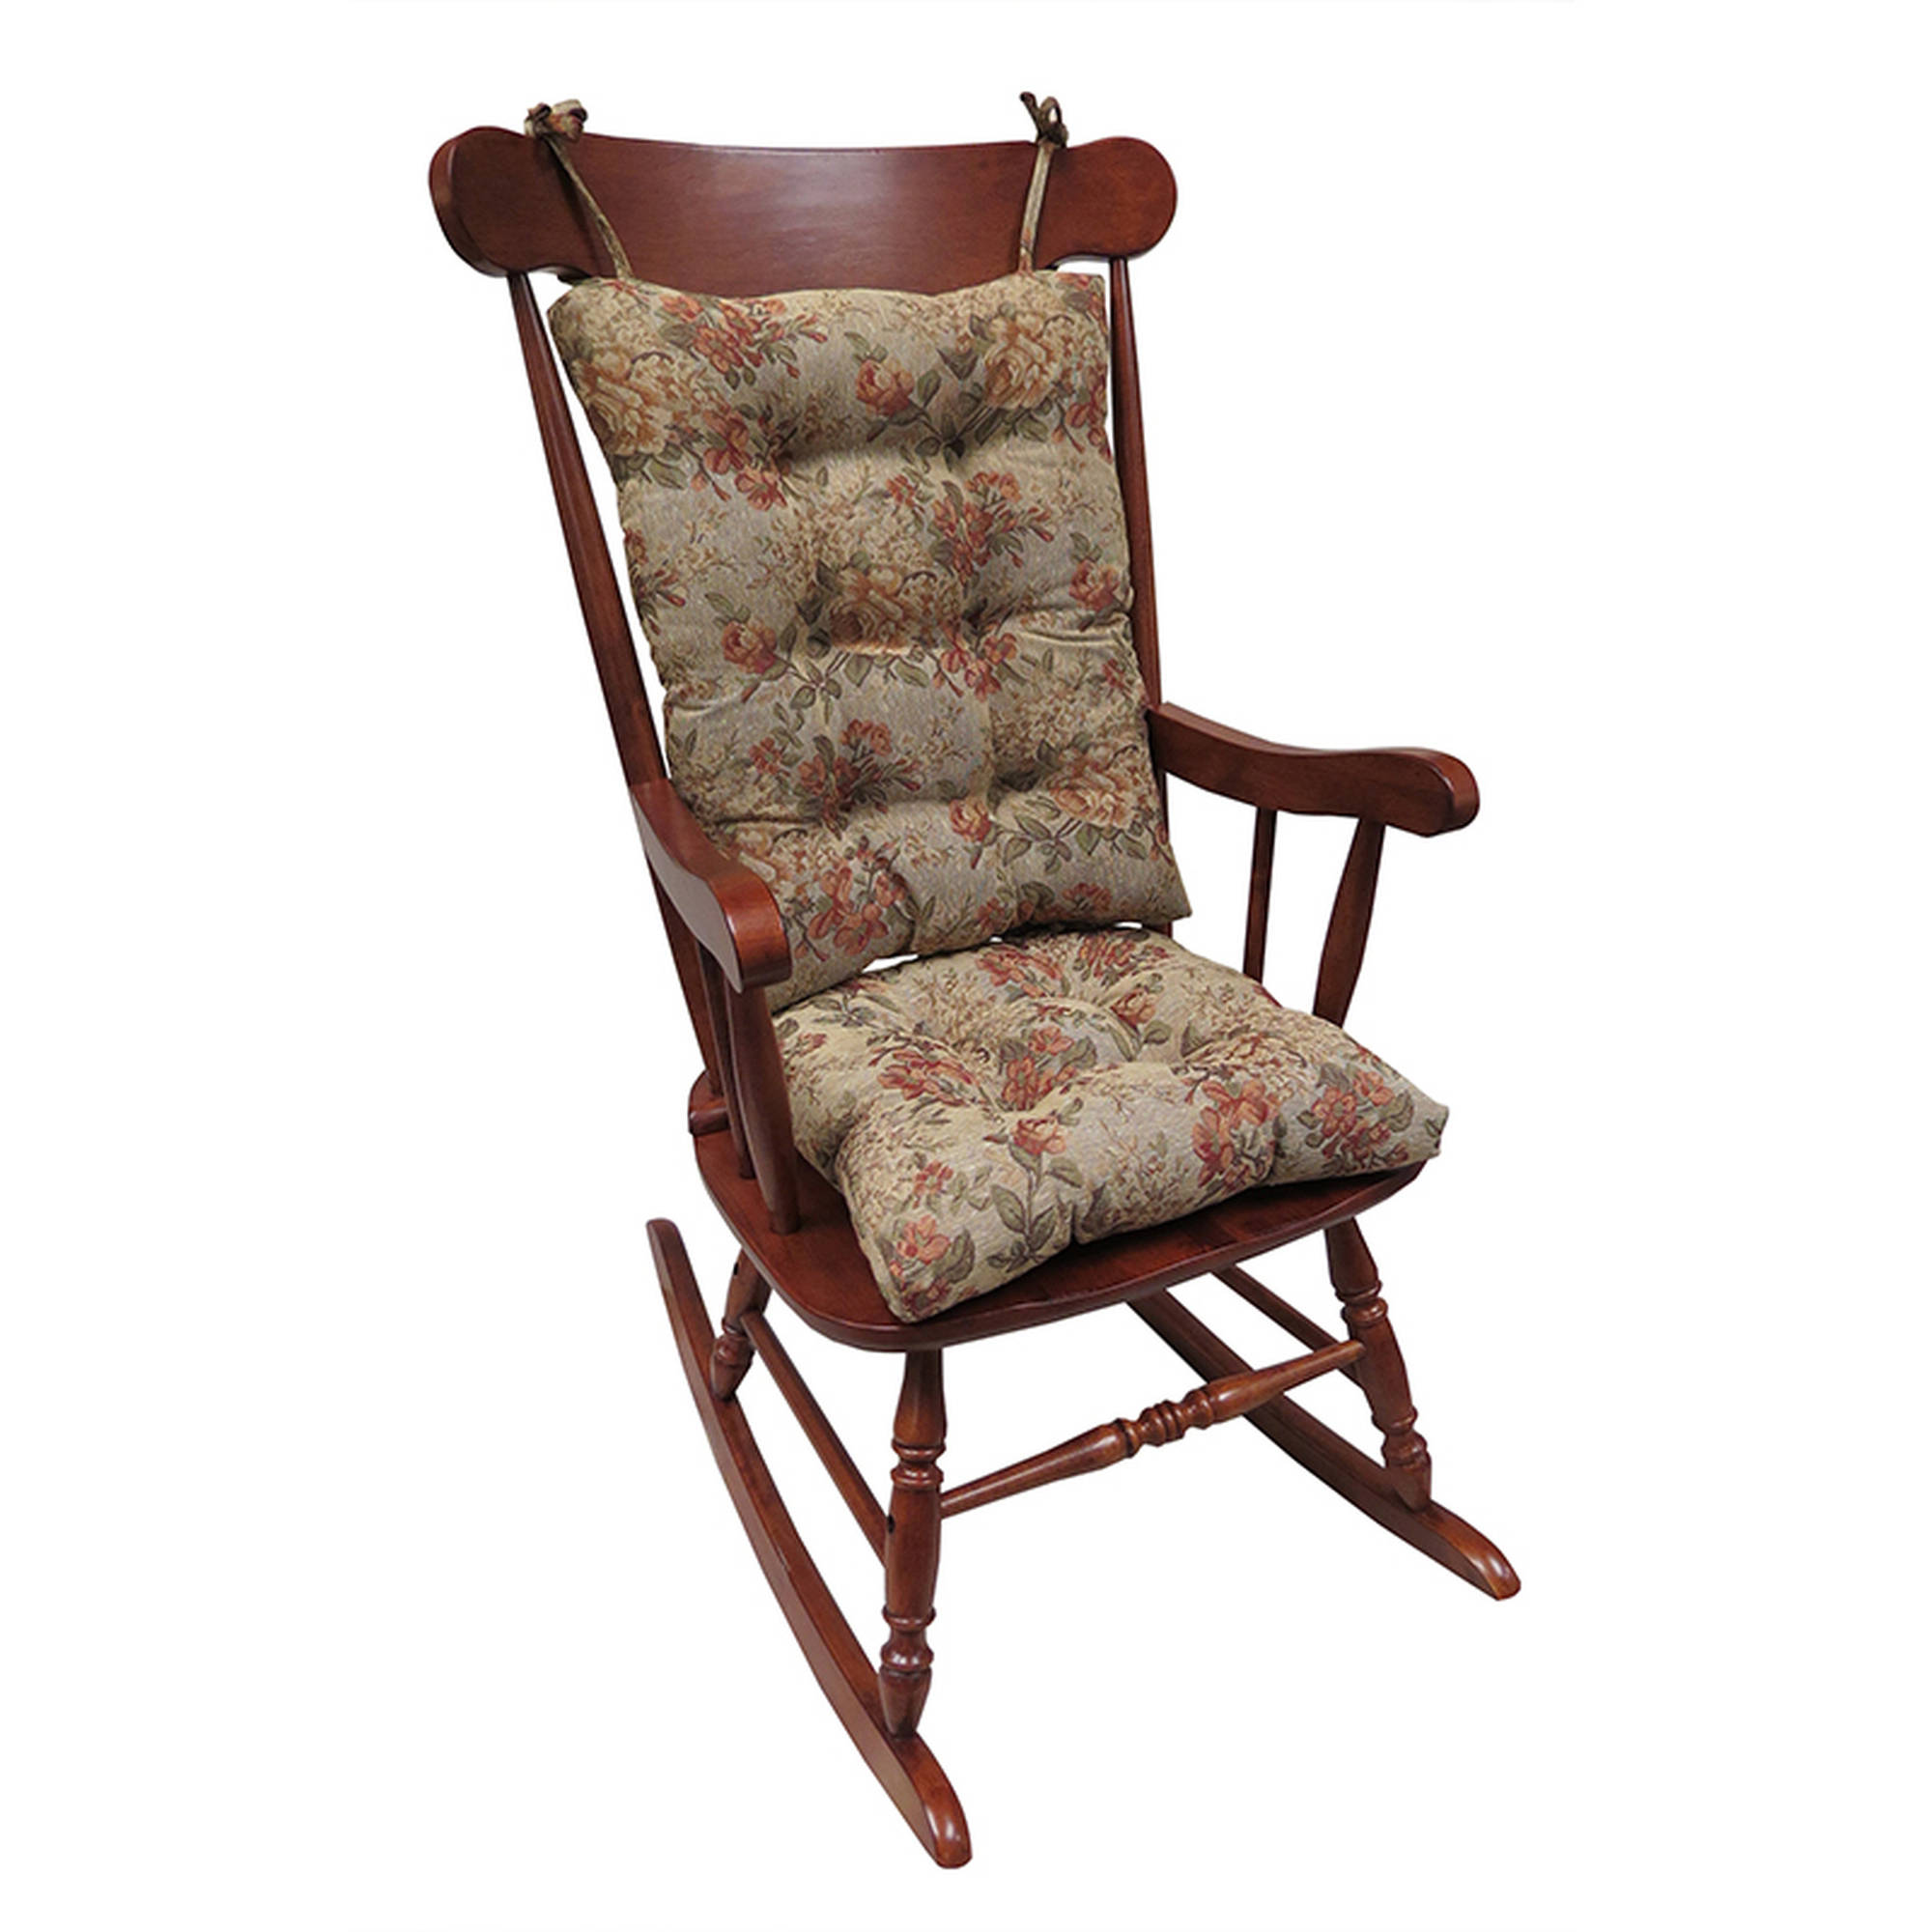 Gripper Jumbo Rocking Chair Cushions, Somerset Tapestry